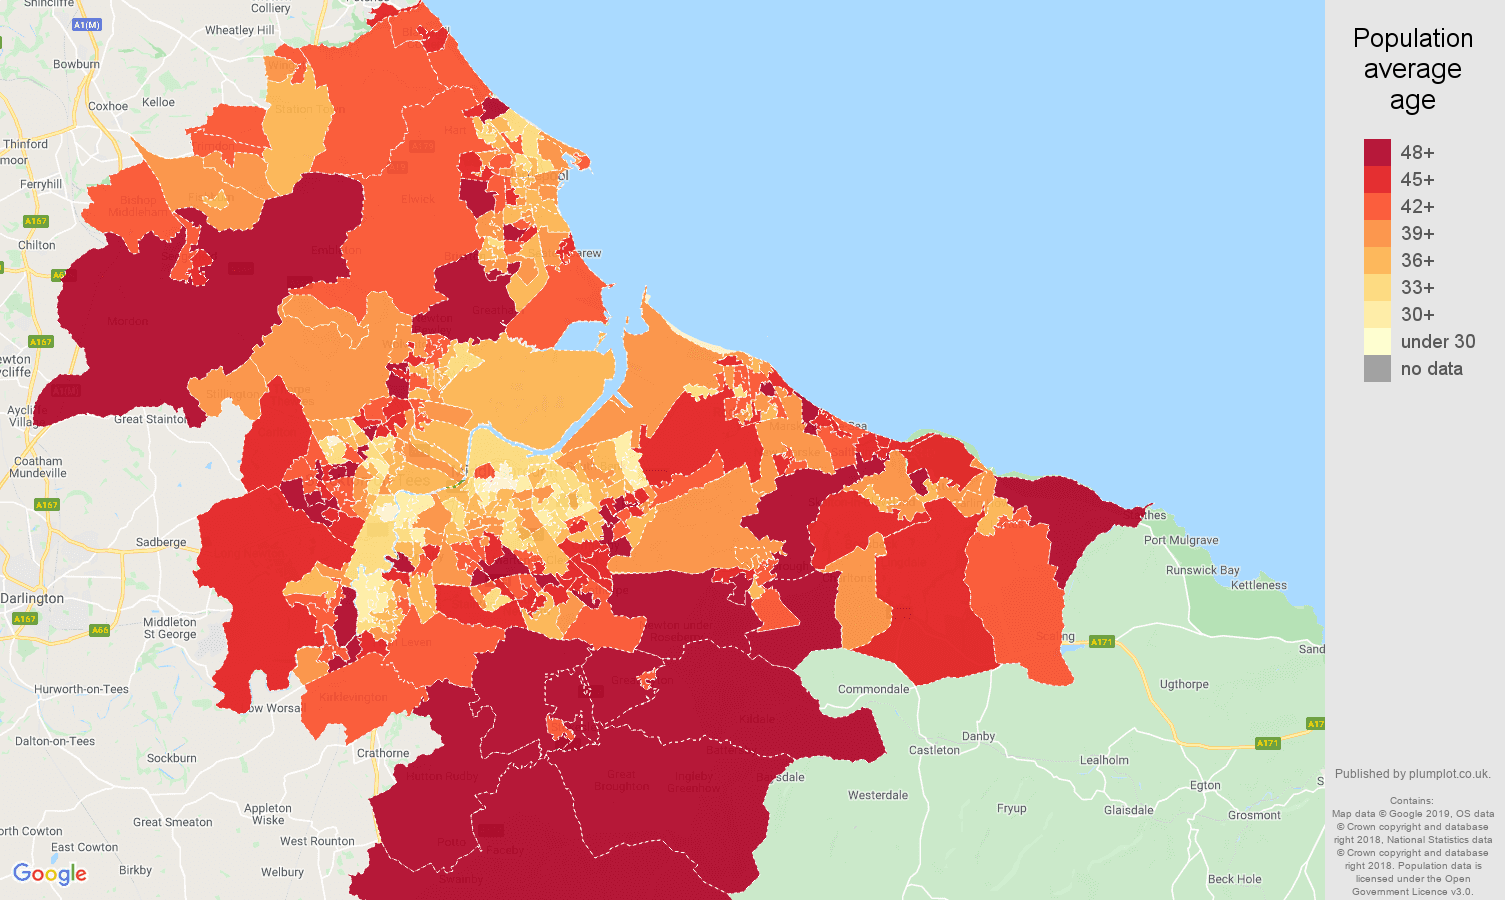 Cleveland population average age map